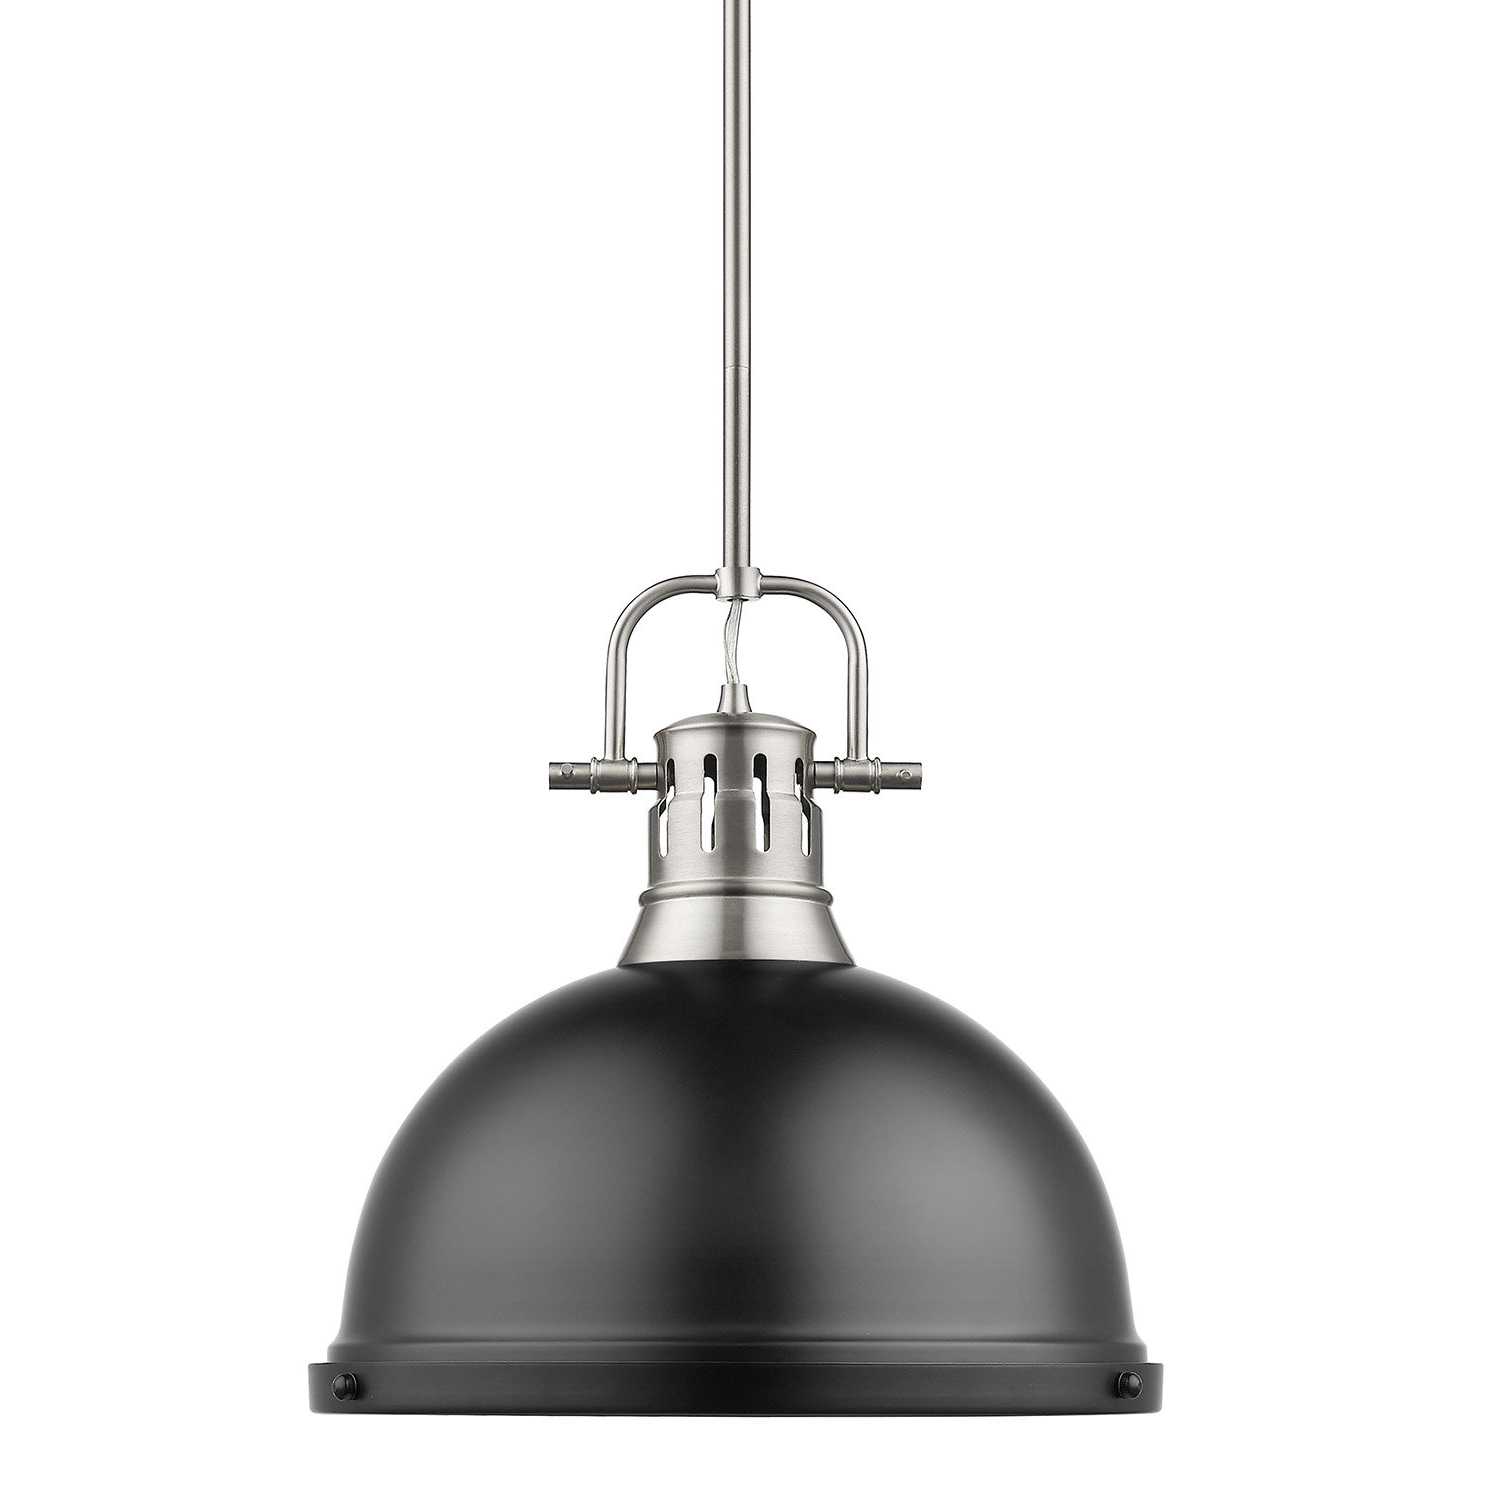 Bodalla 1-Light Single Dome Pendant in 2019 Knoxville 1-Light Single Teardrop Pendants